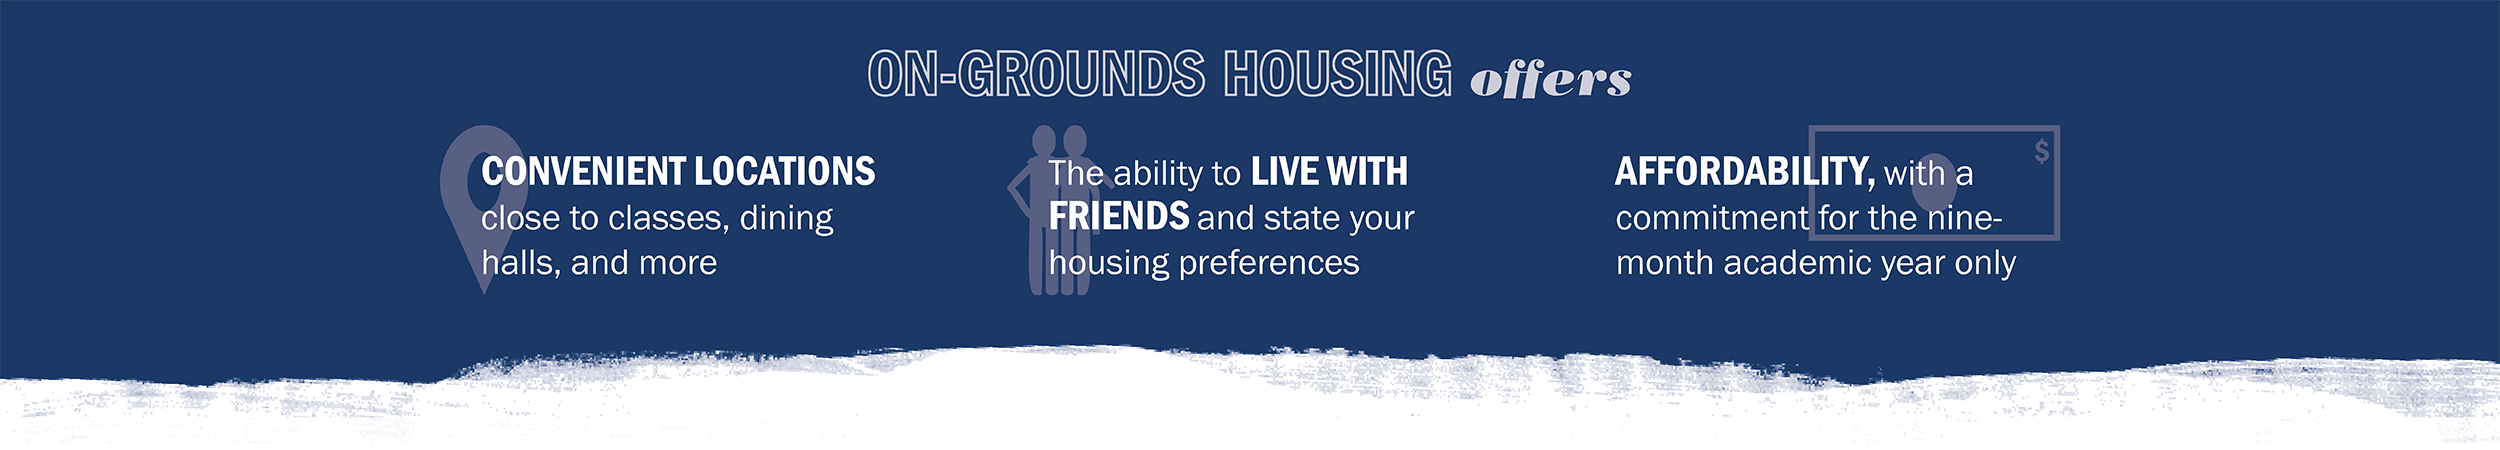 On-Grounds housing offers convenient locations close to classes, dining, and more; the ability to live with friends and state housing preferences; and affordability, with a financial commitment for the nine-month academic year only.